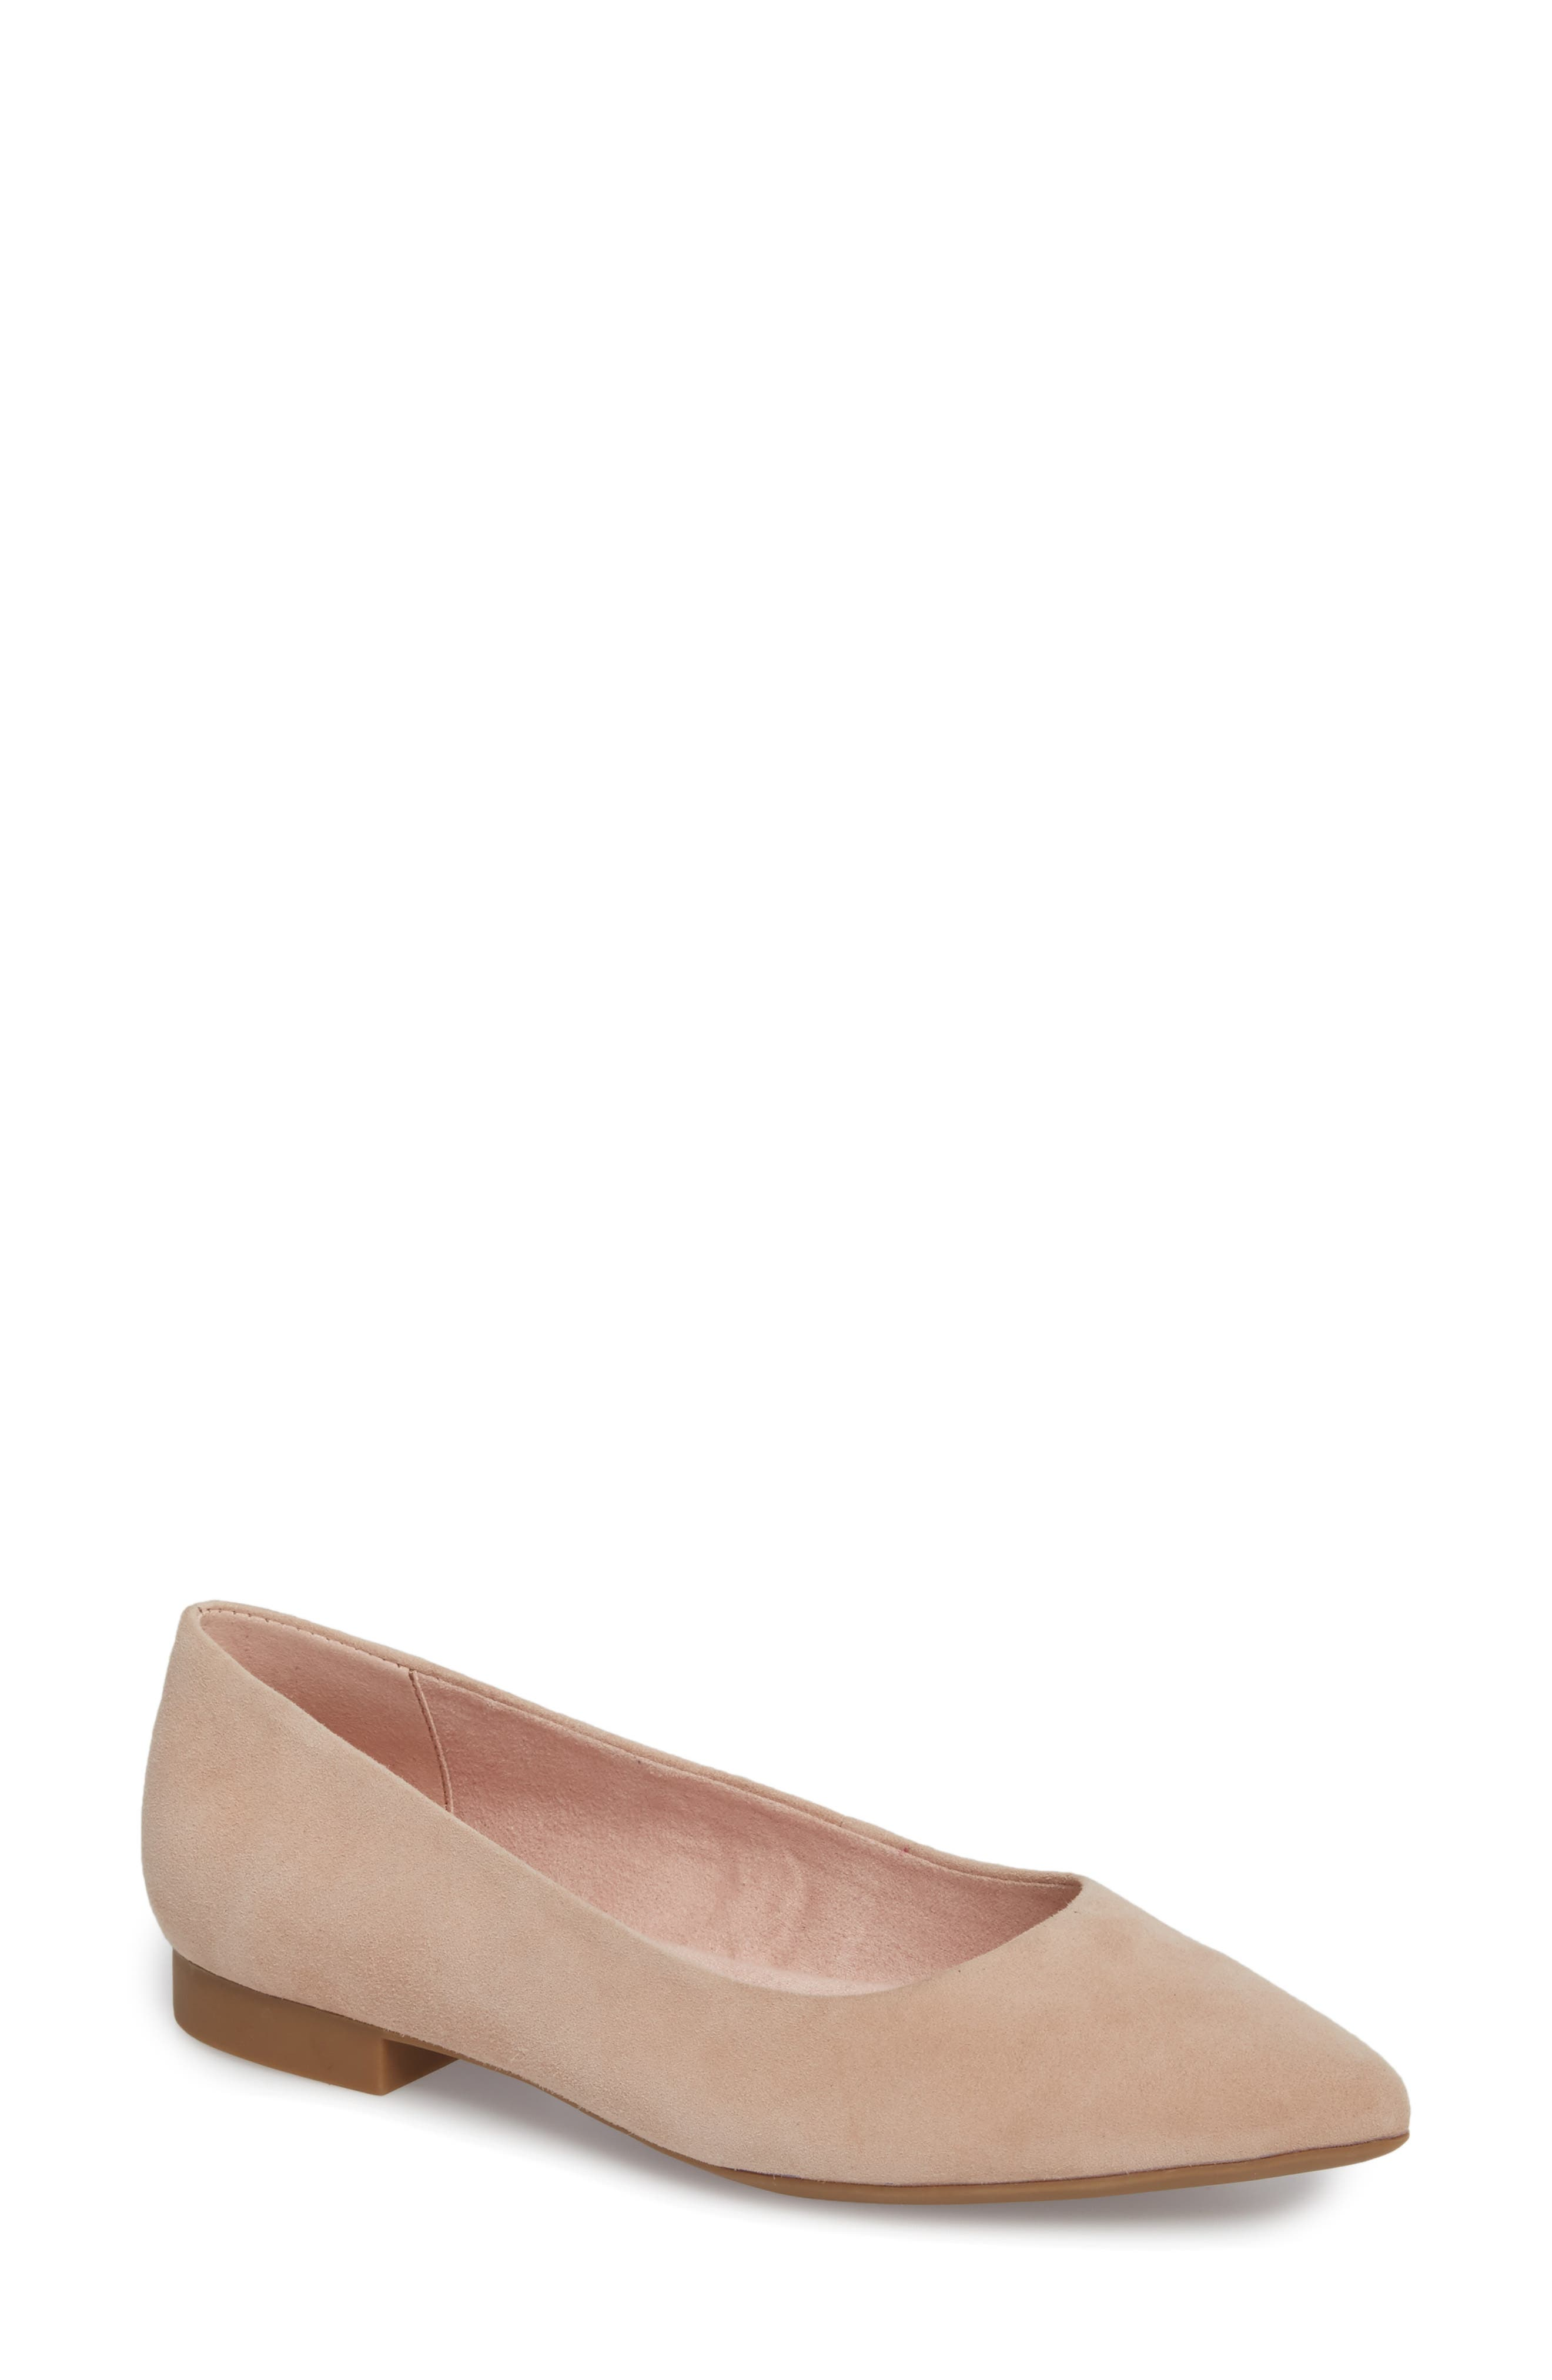 'Vivien' Pointy Toe Flat,                             Main thumbnail 1, color,                             BLUSH SUEDE